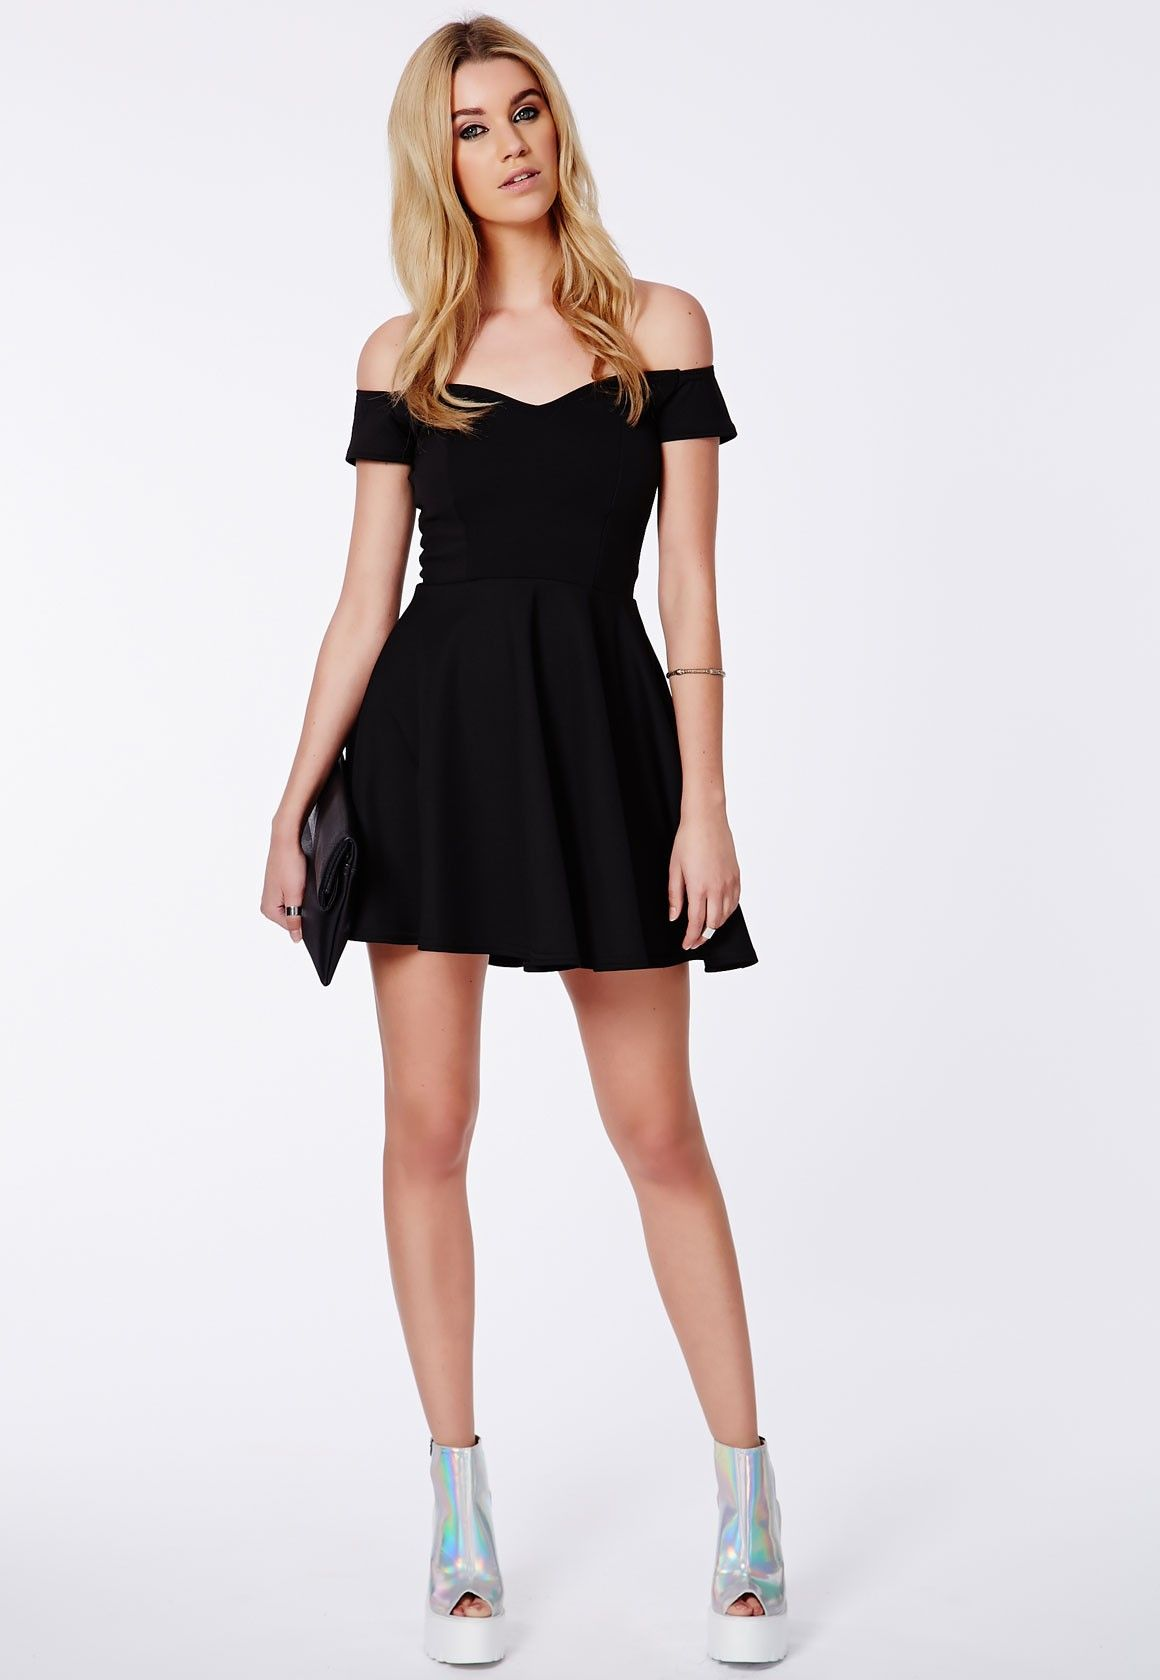 Lace puffball skater dress missguided shoes